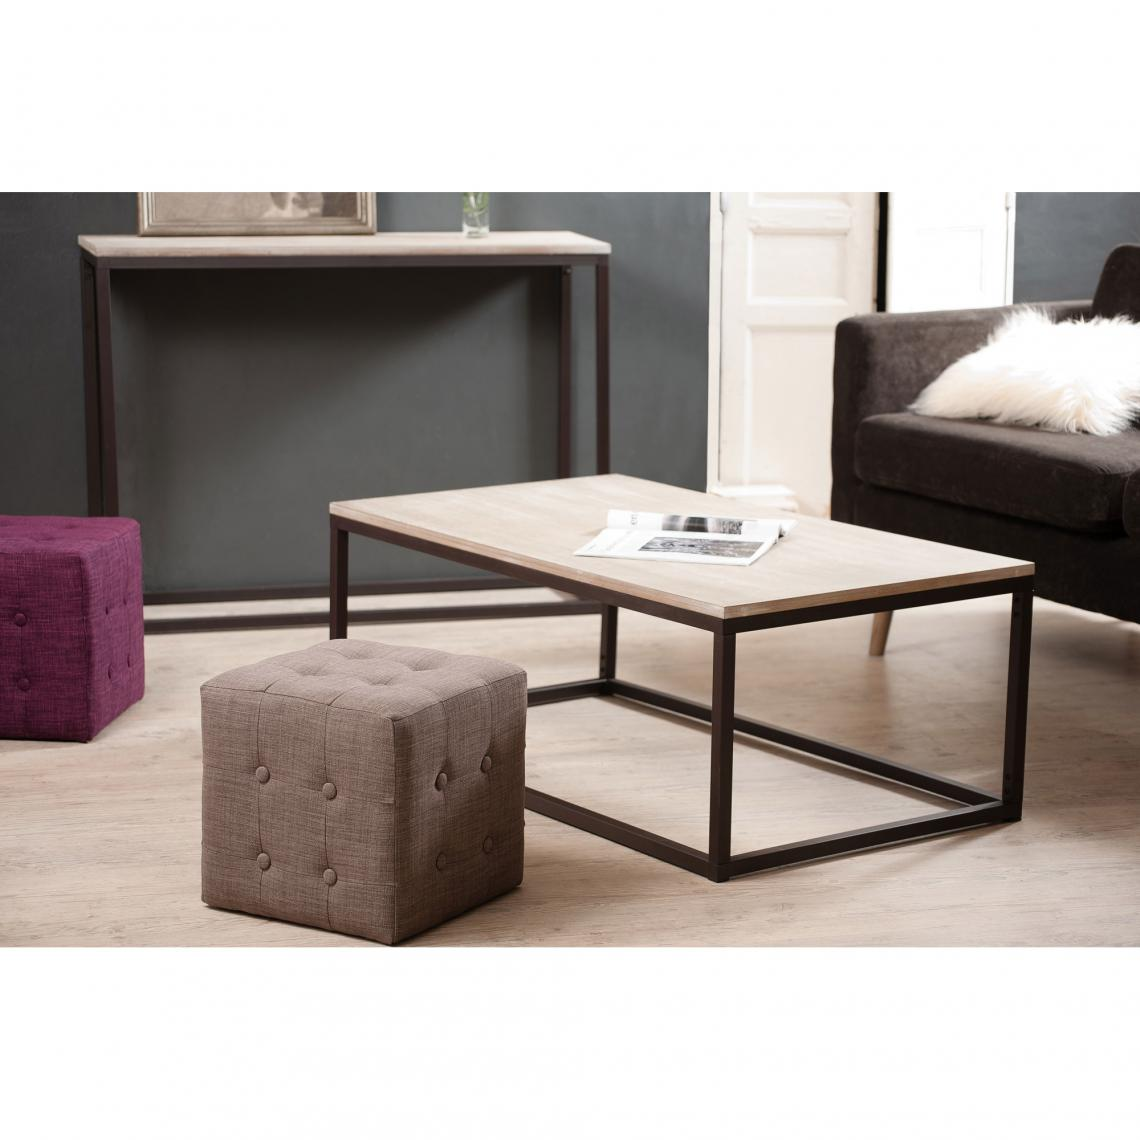 Table basse bois 3 suisses